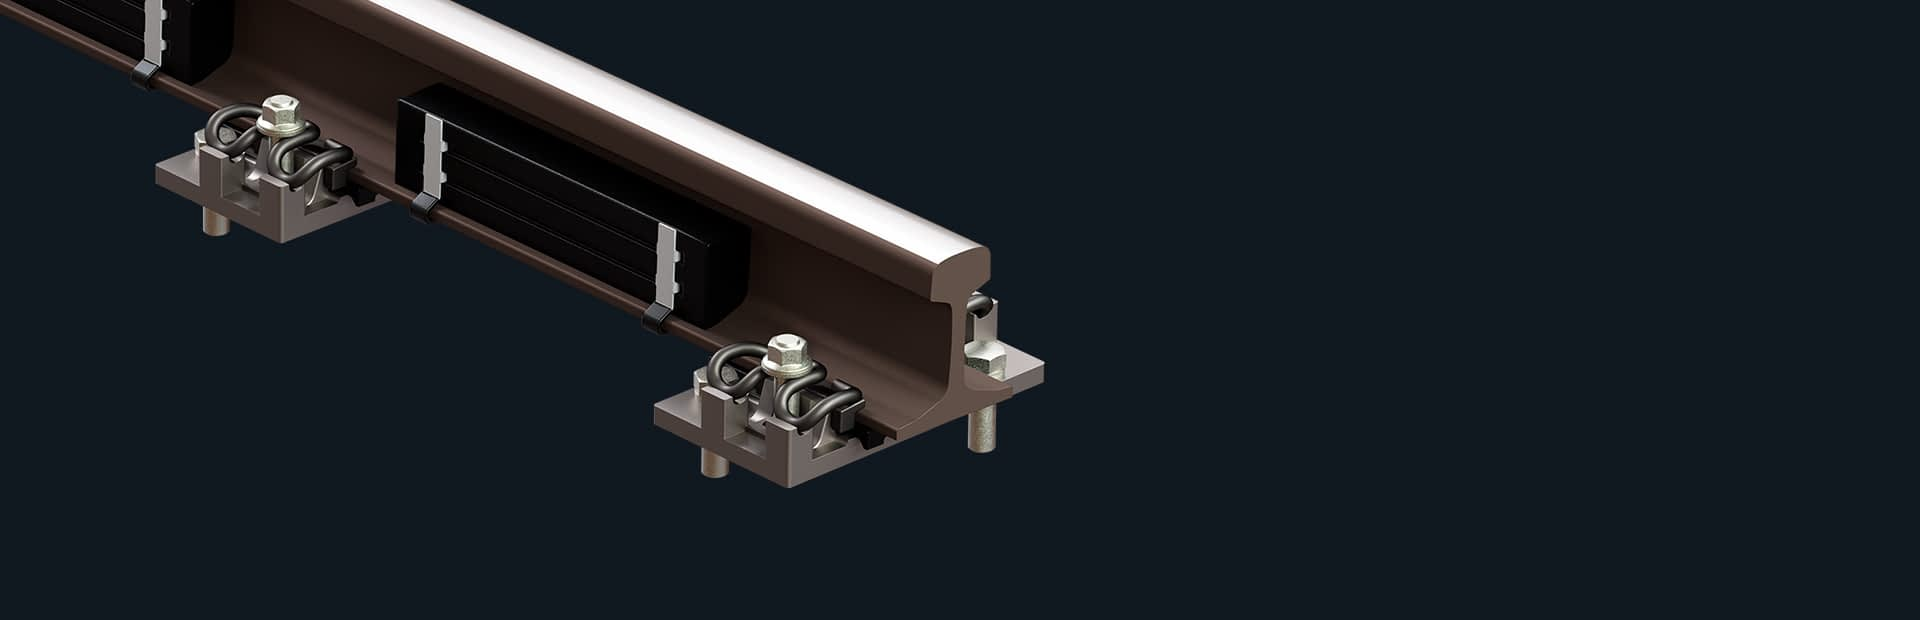 tiantie-group_products_rail-damper_separator-image_1920x1080